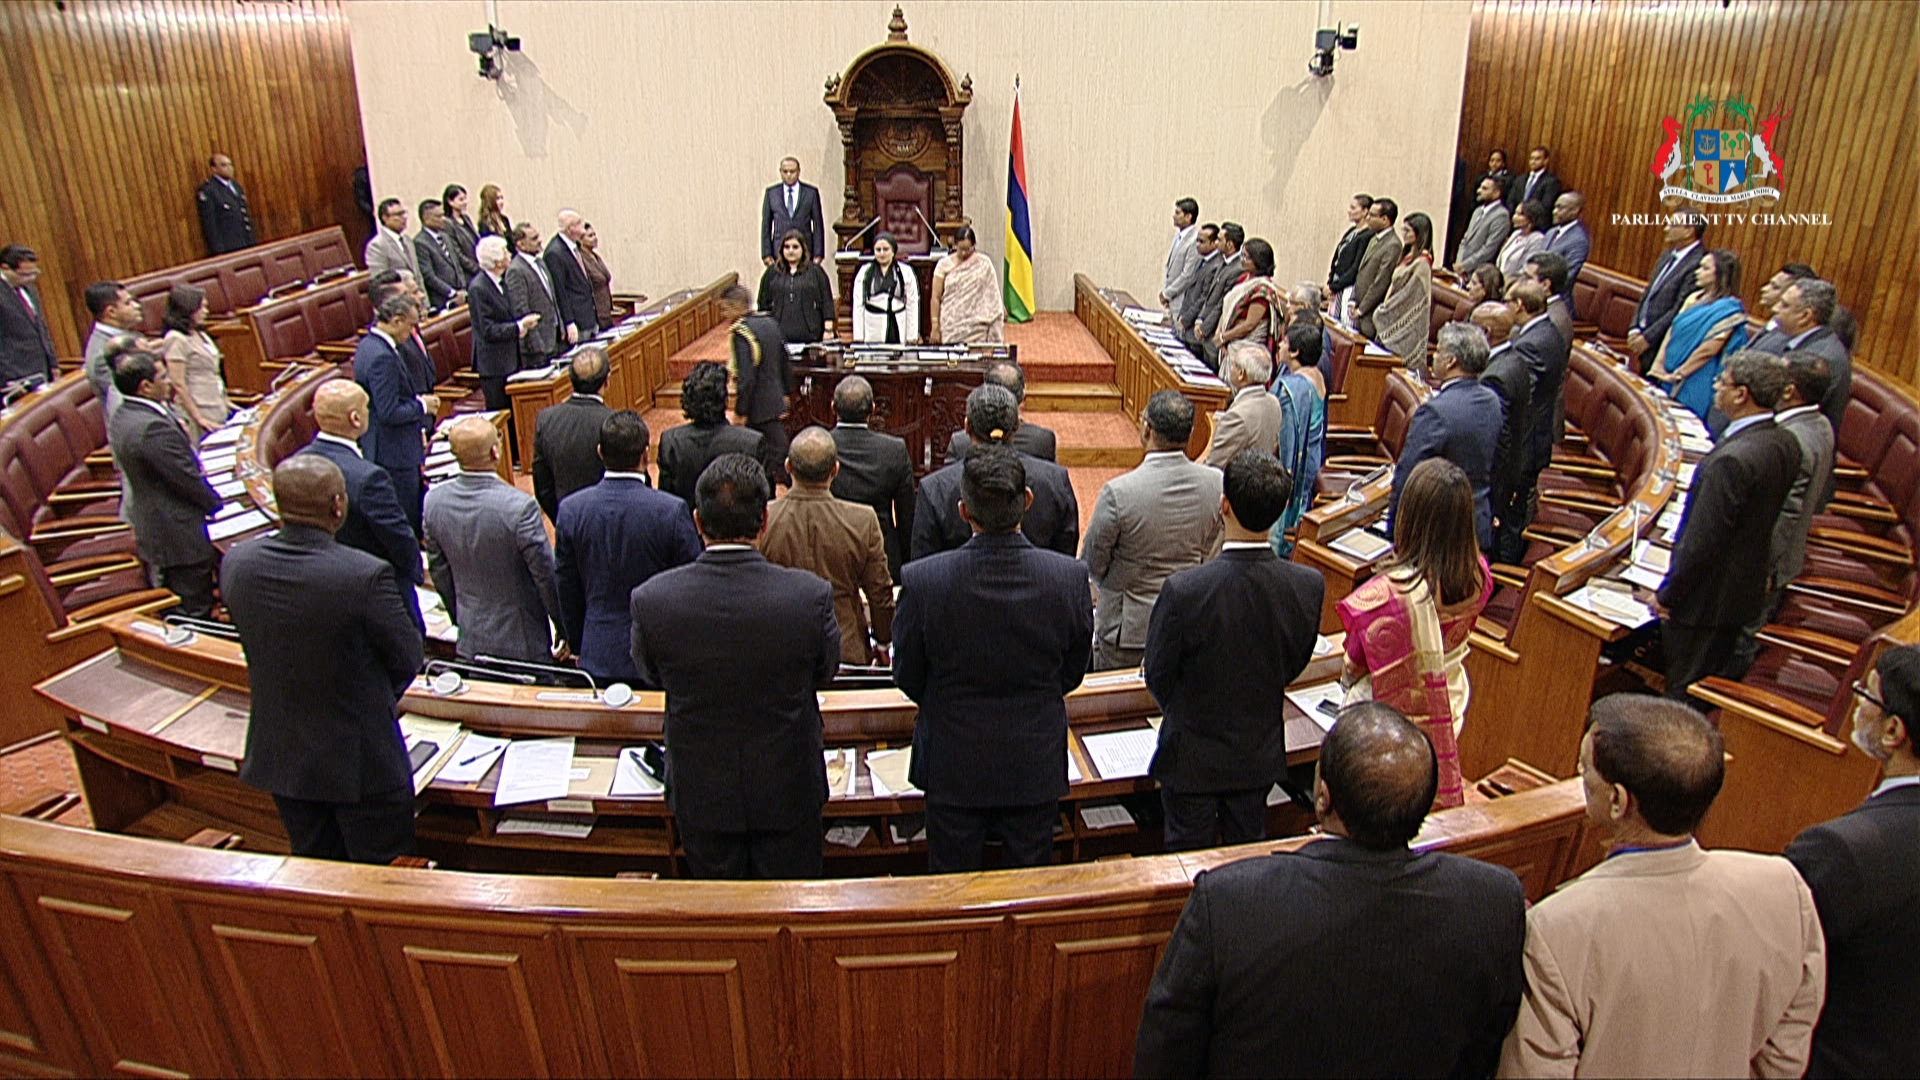 Mauritius National Assembly Chamber